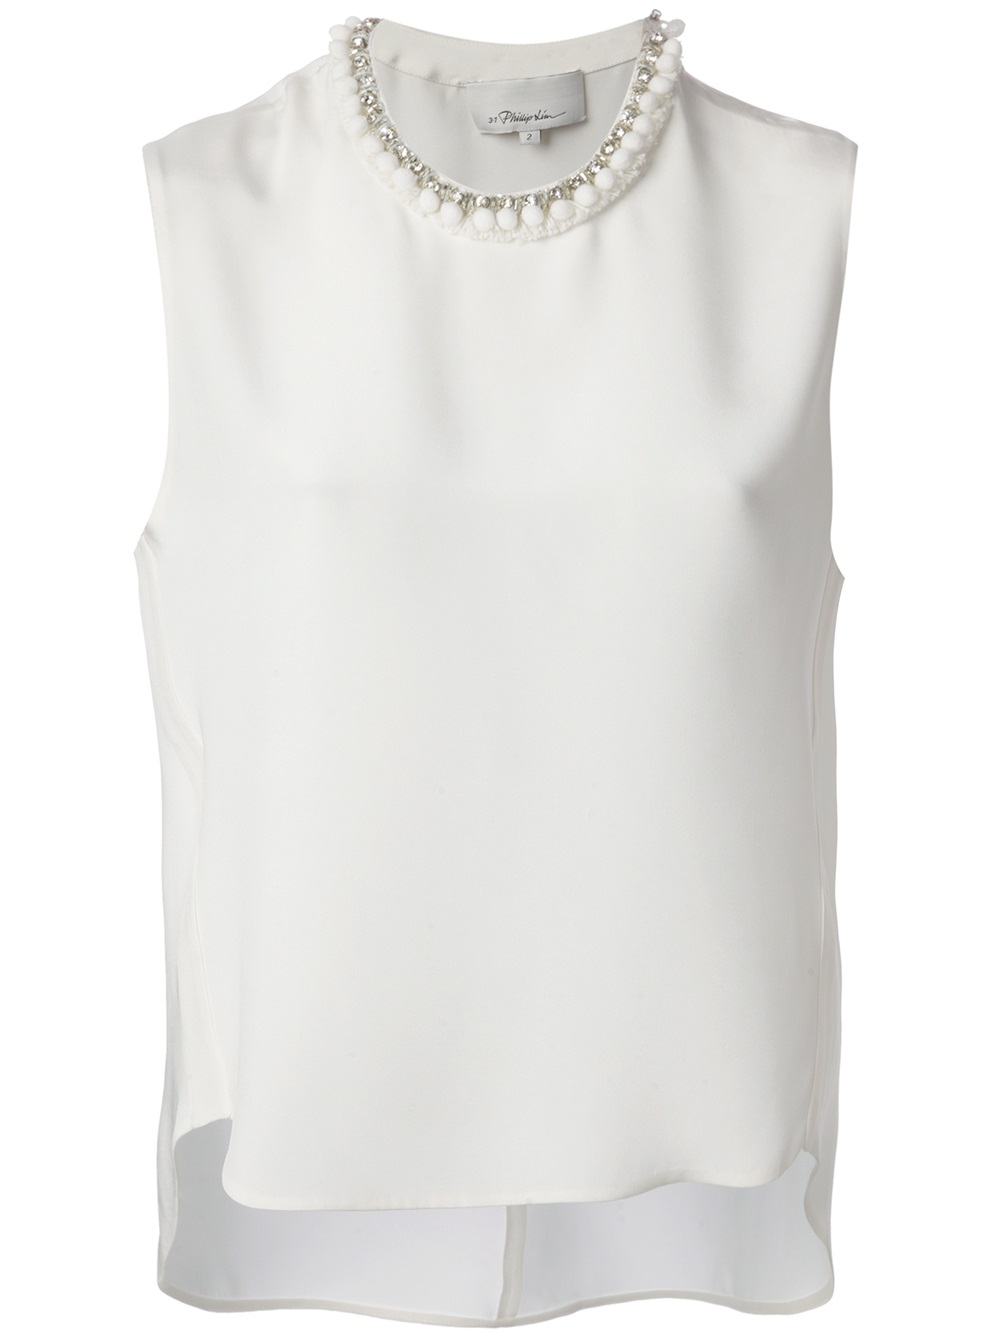 pleated V-neck blouse - White 3.1 Phillip Lim For Sale Very Cheap DKMBSDyD